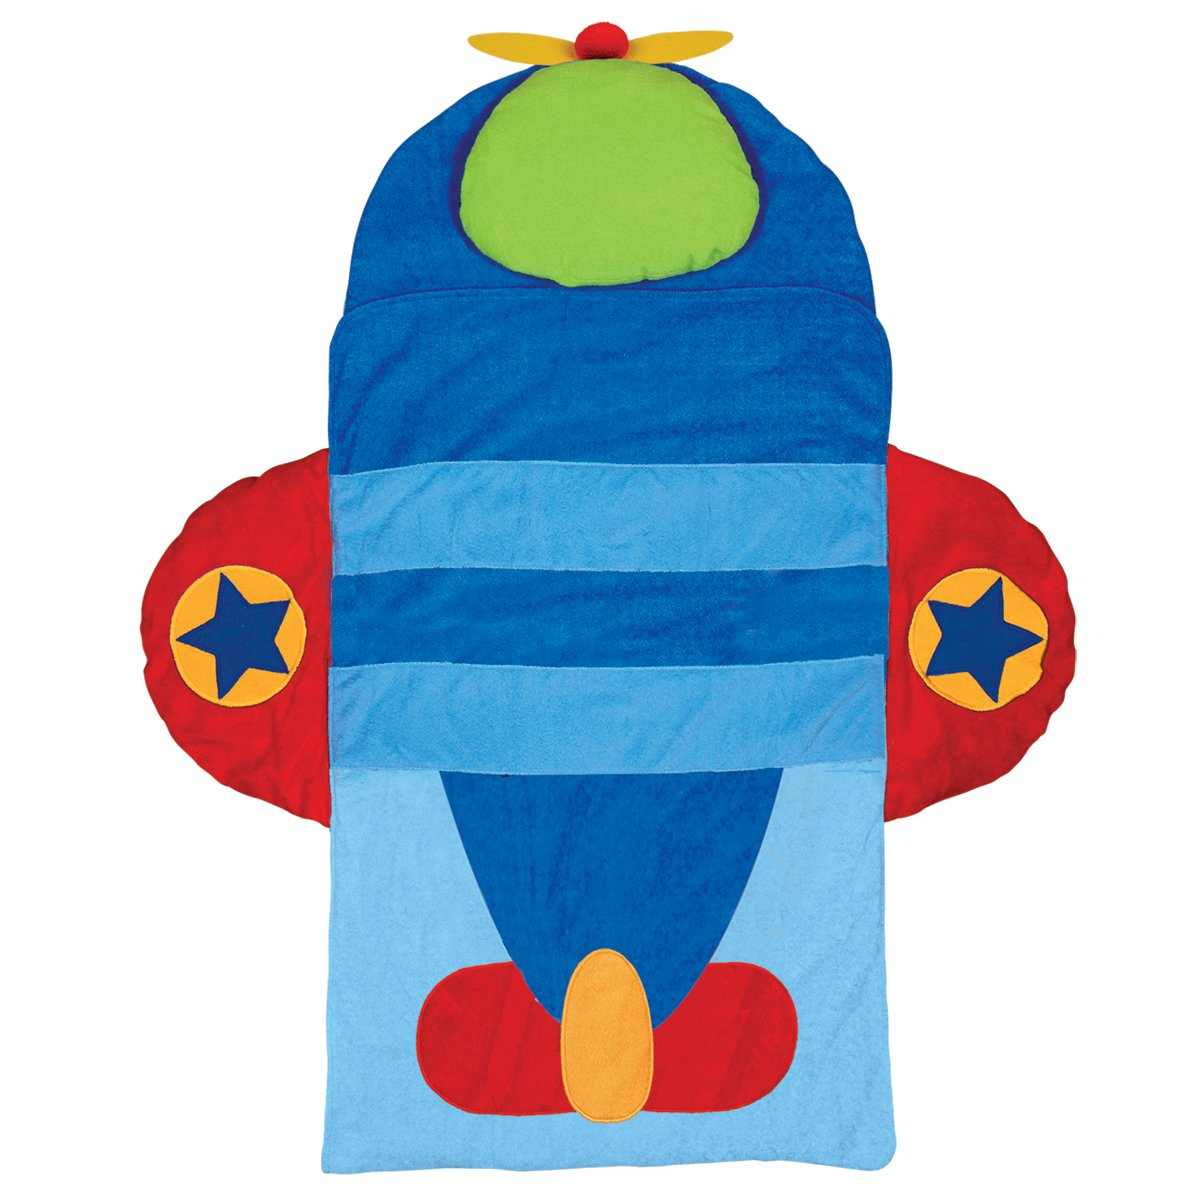 Stephen Joseph Airplane Nap Mat, Blue/Red SJ770181